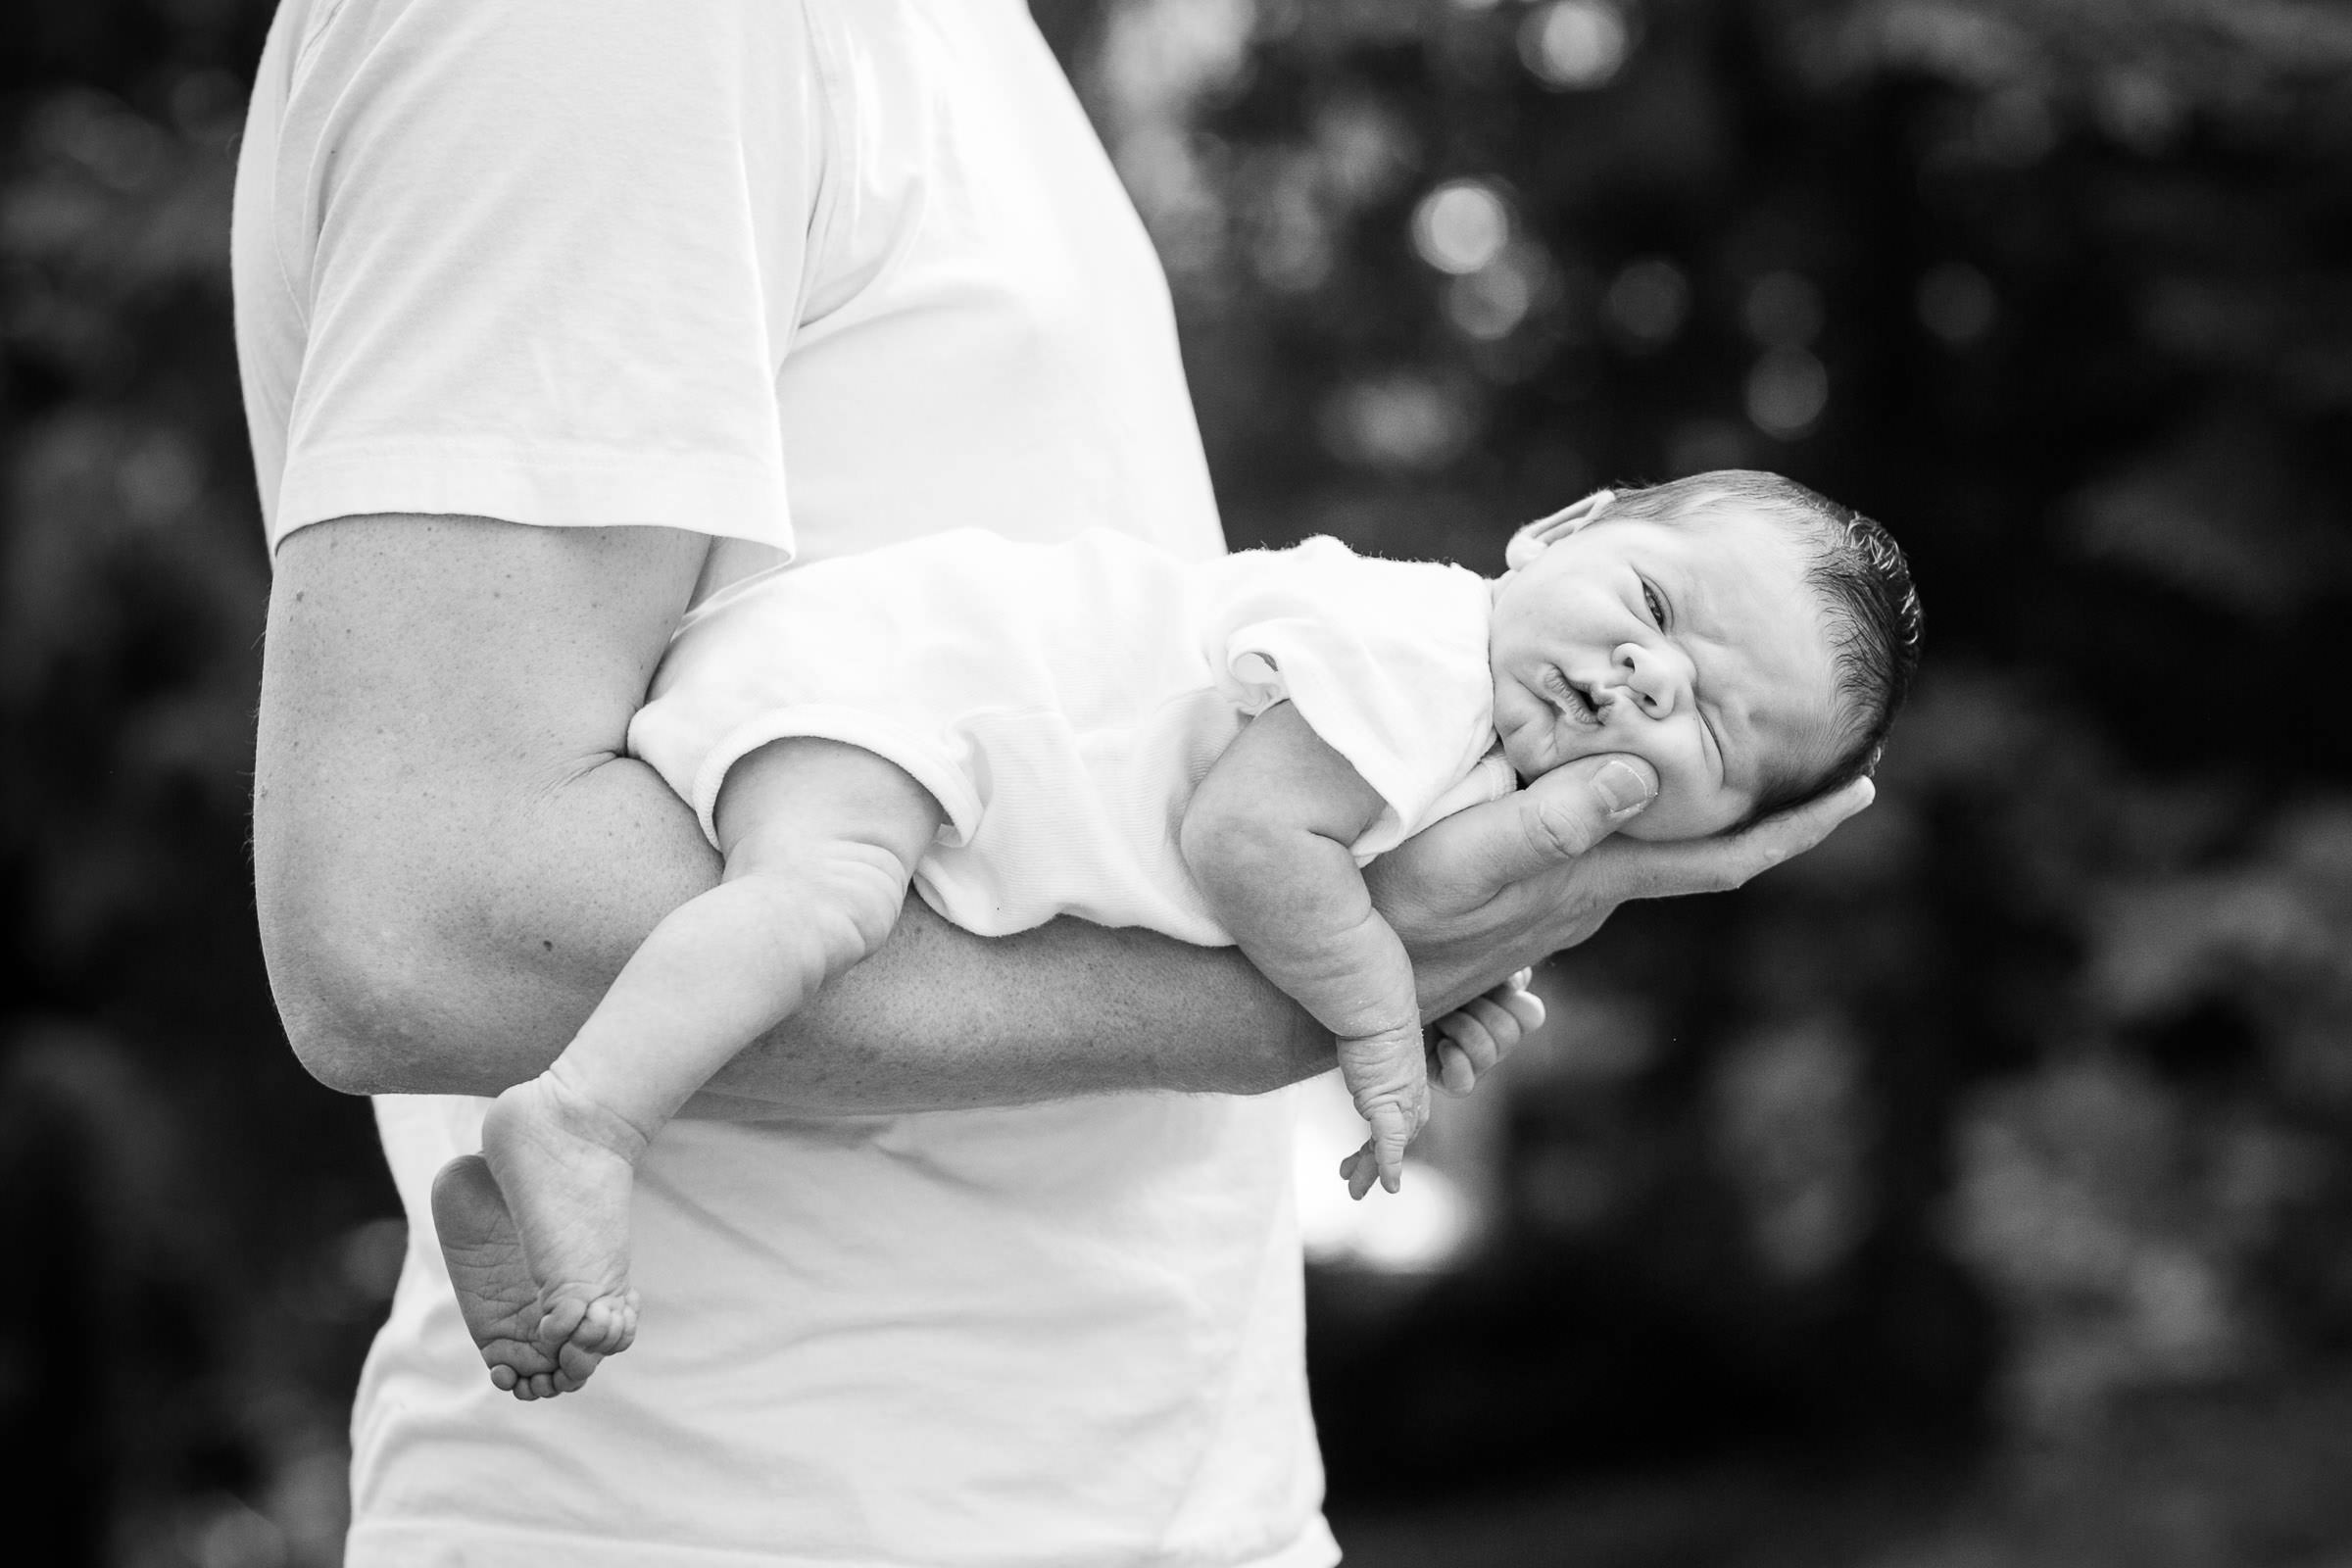 dad holding sleeping baby in one arm